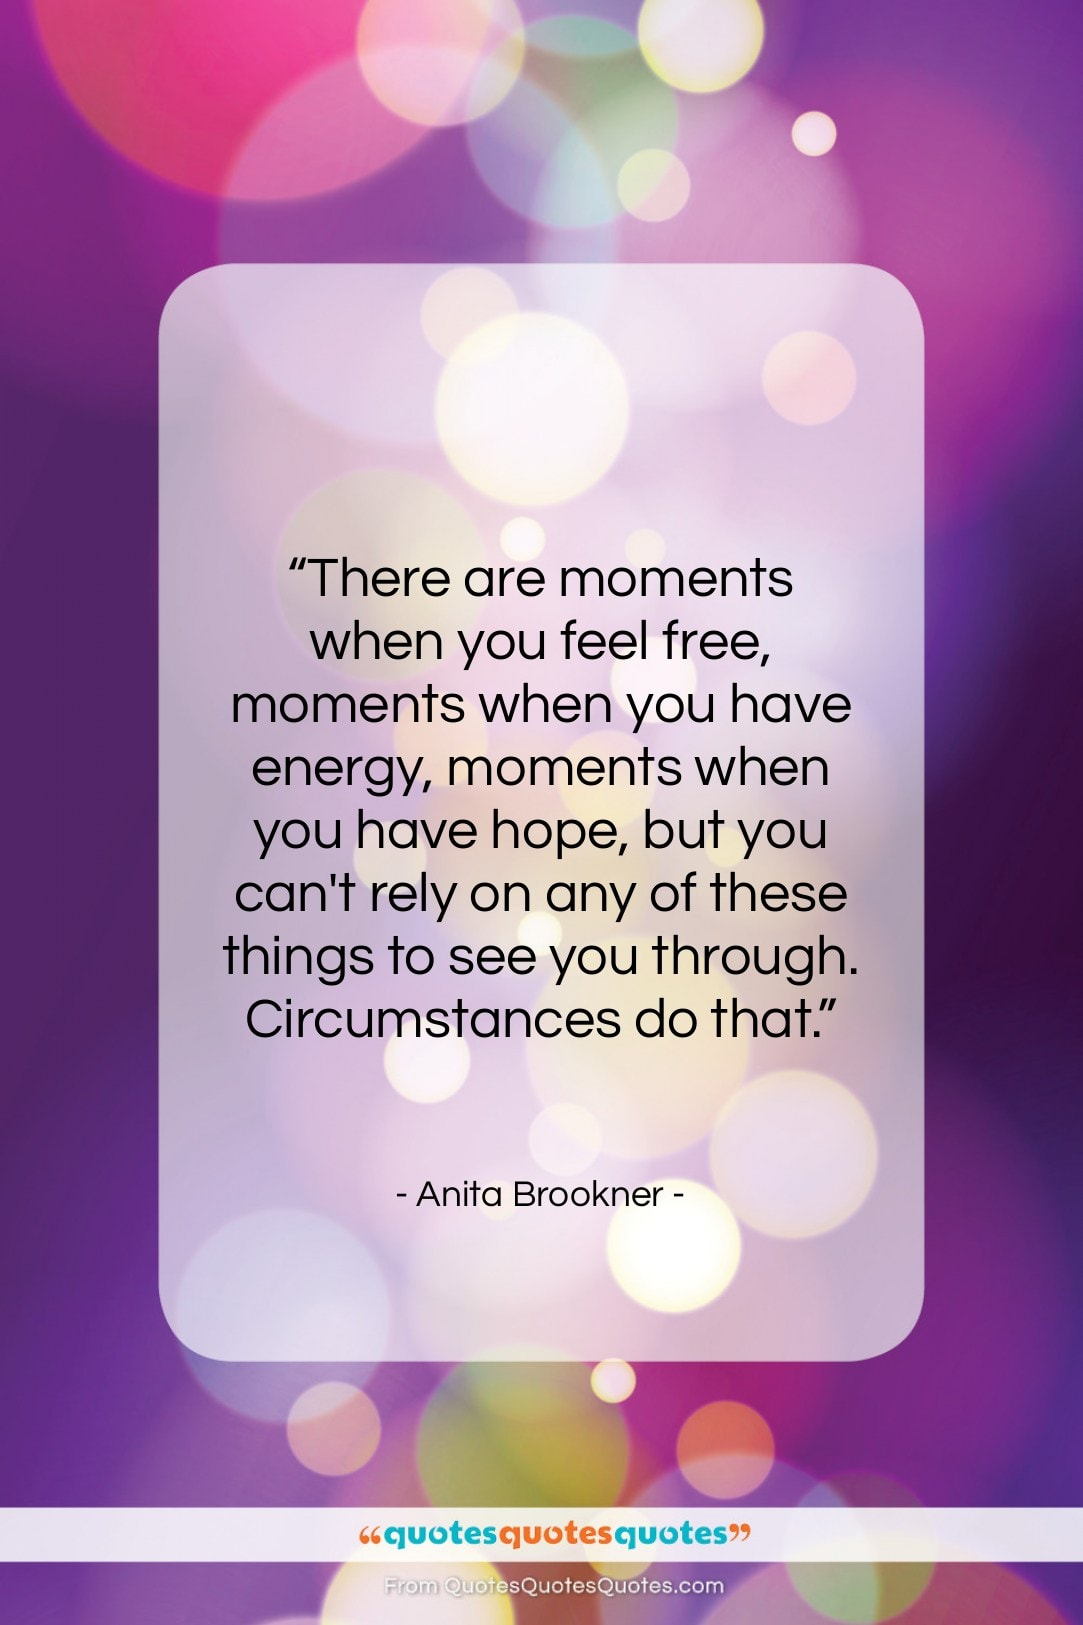 """Anita Brookner quote: """"There are moments when you feel free,…""""- at QuotesQuotesQuotes.com"""